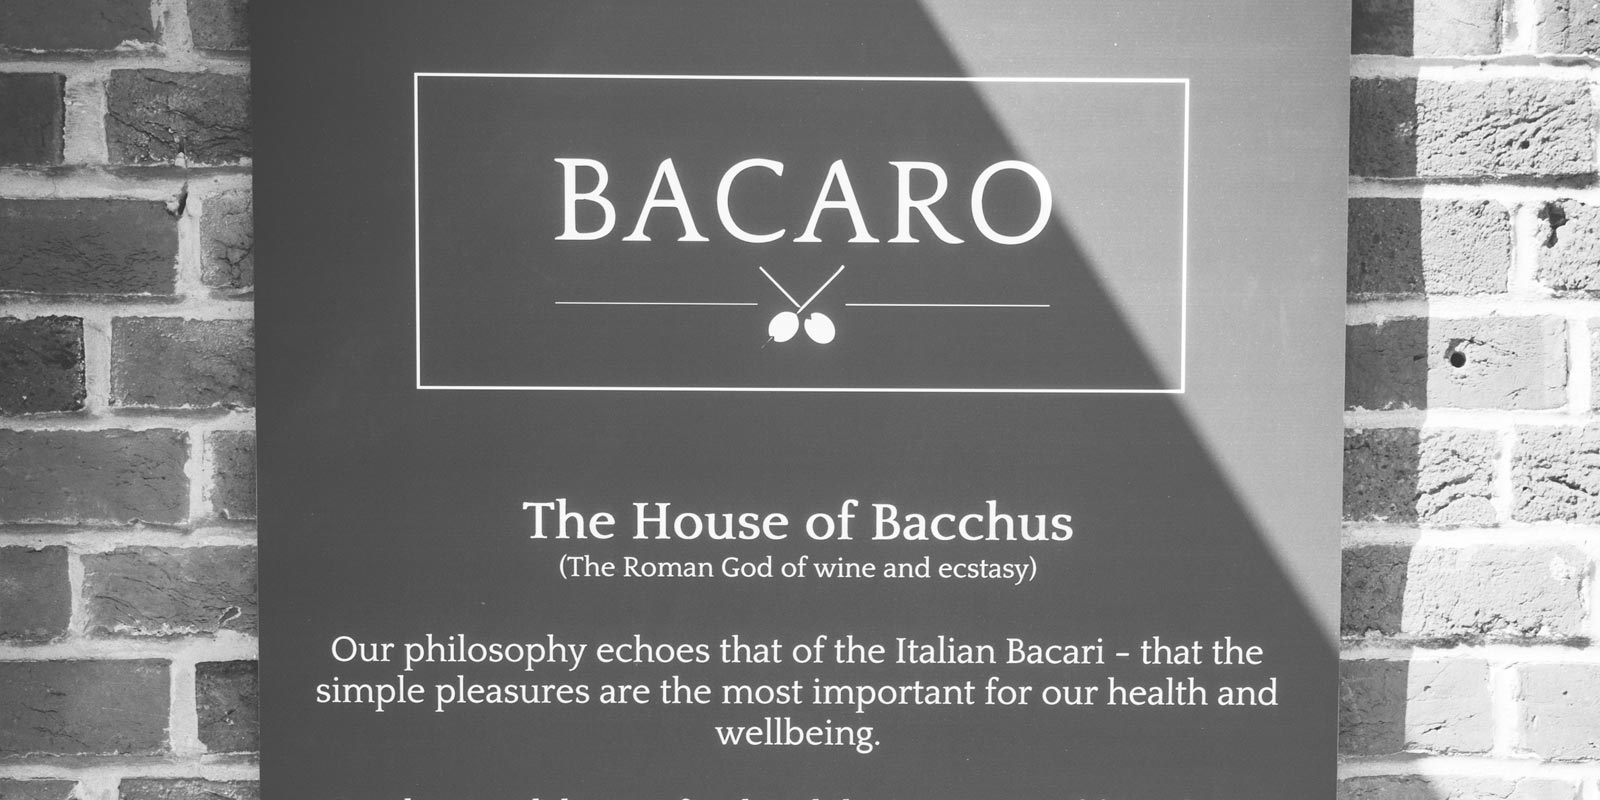 Bacaro's philosophy